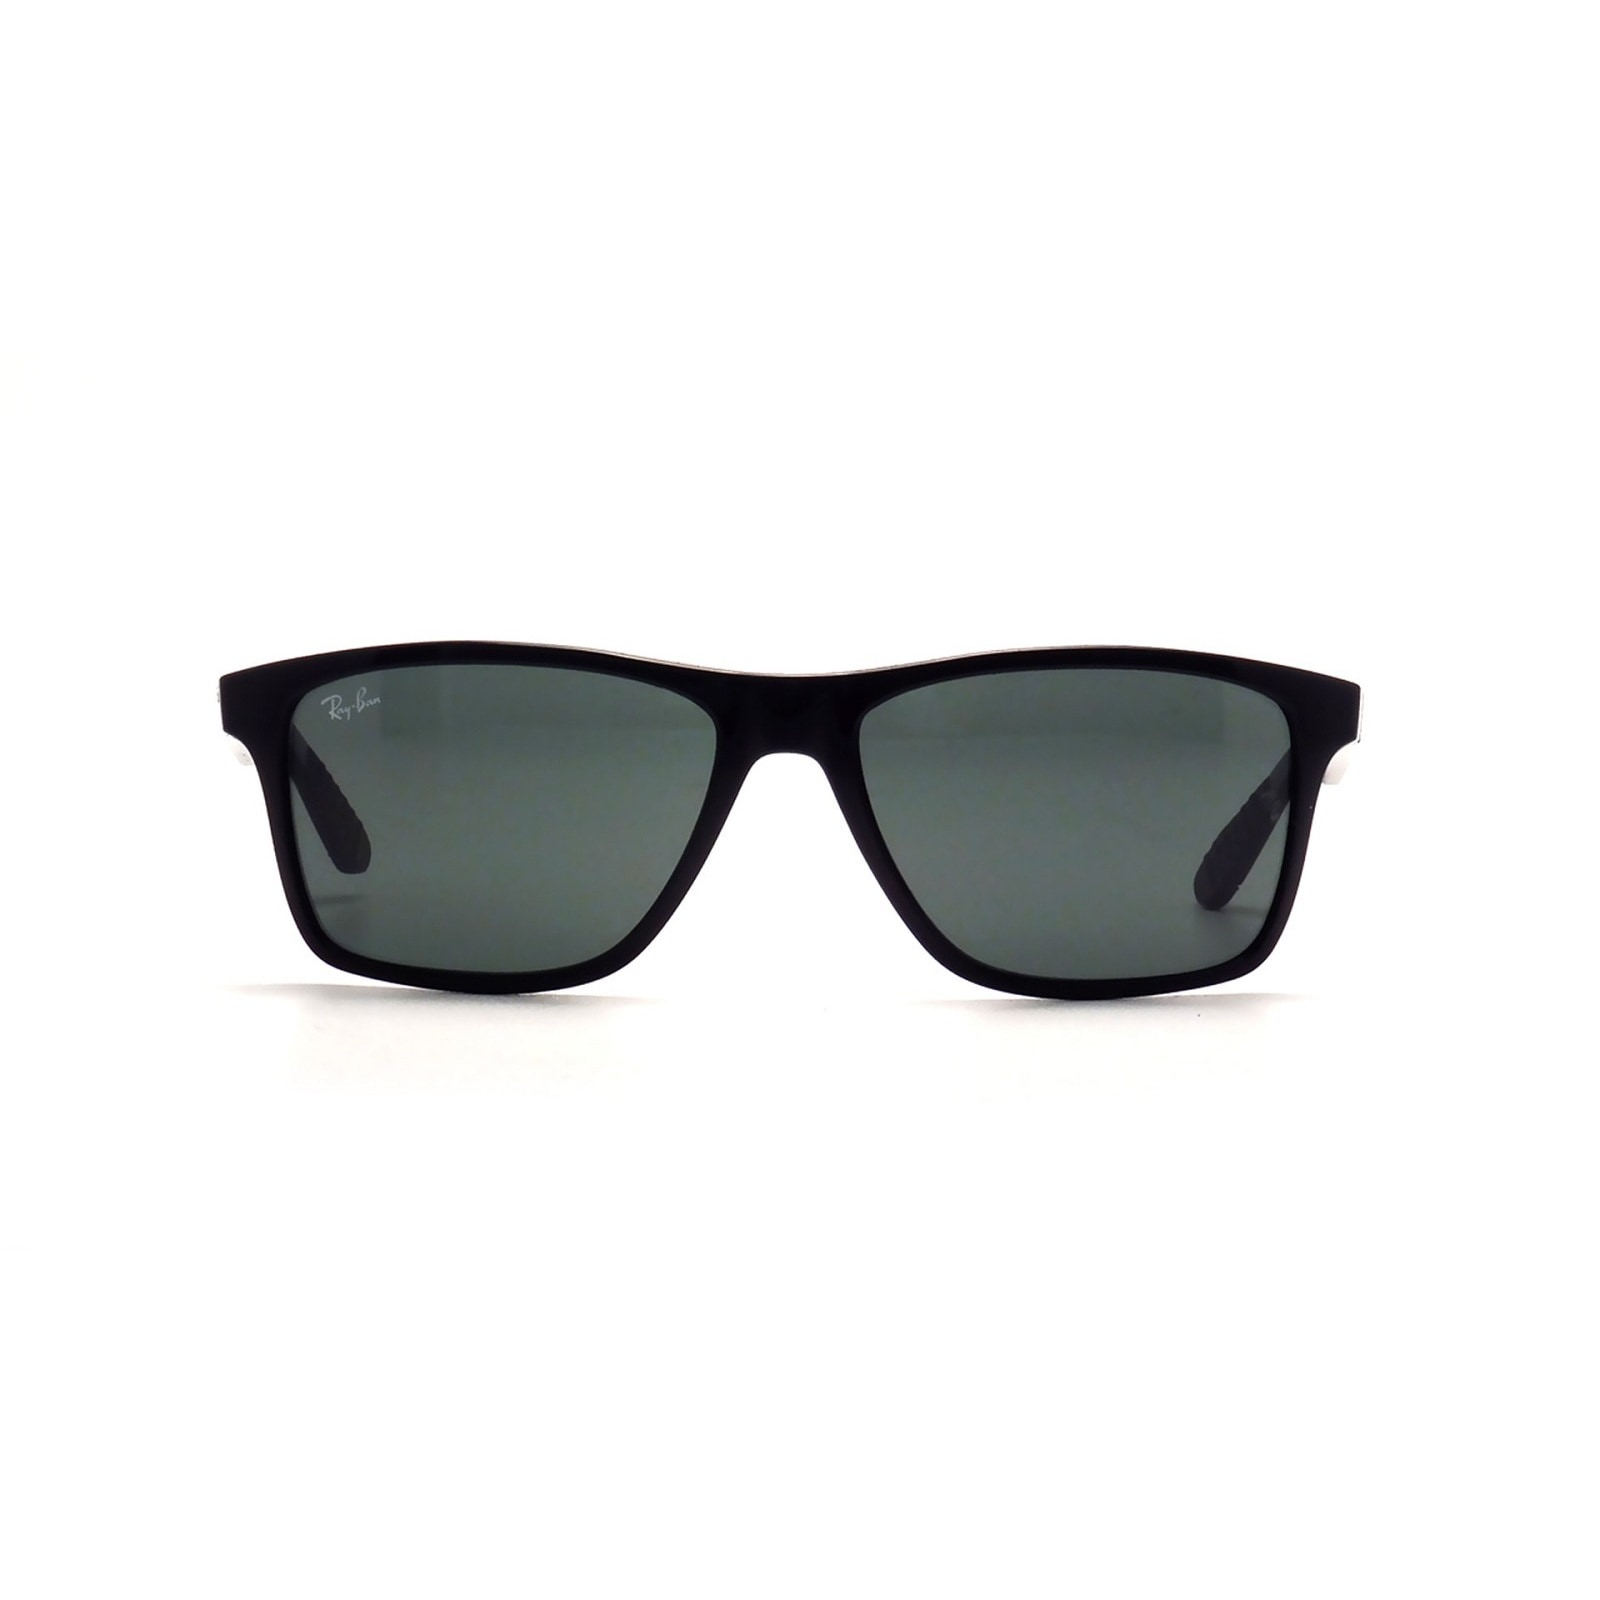 5428e84769 Shop Ray-Ban RB4234 601 71 Black Frame Green Classic 58mm Lens Sunglasses -  Ships To Canada - Overstock - 14335564